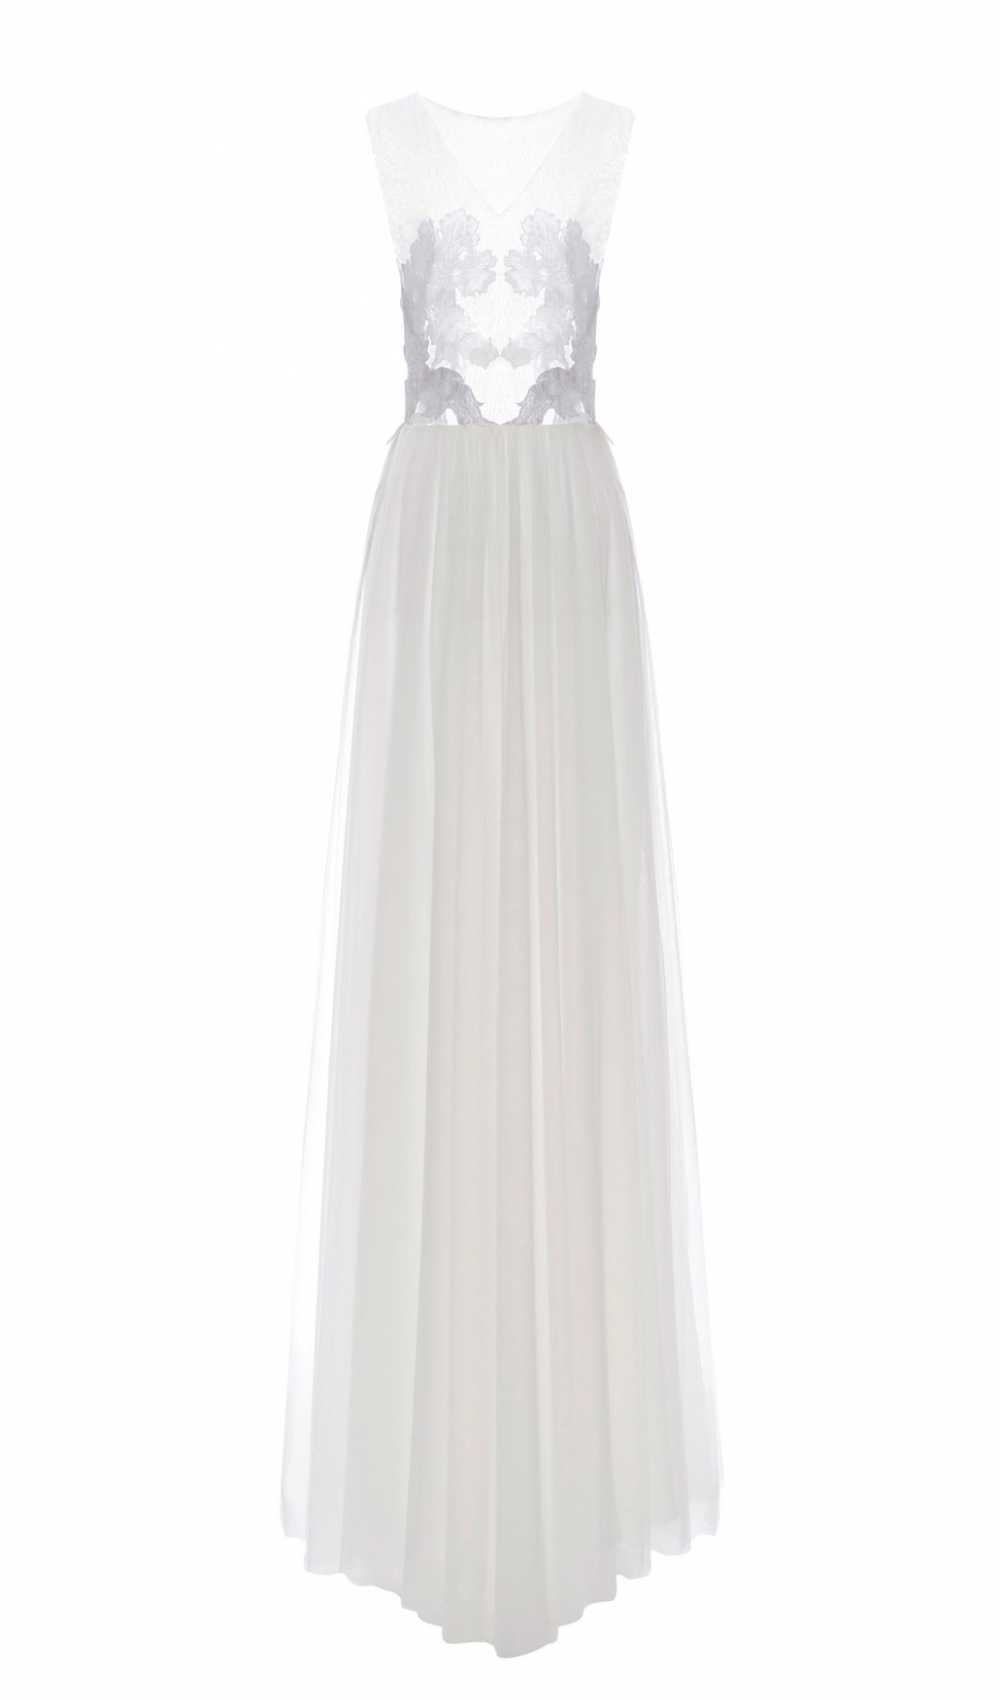 White Iris Illusion Dress